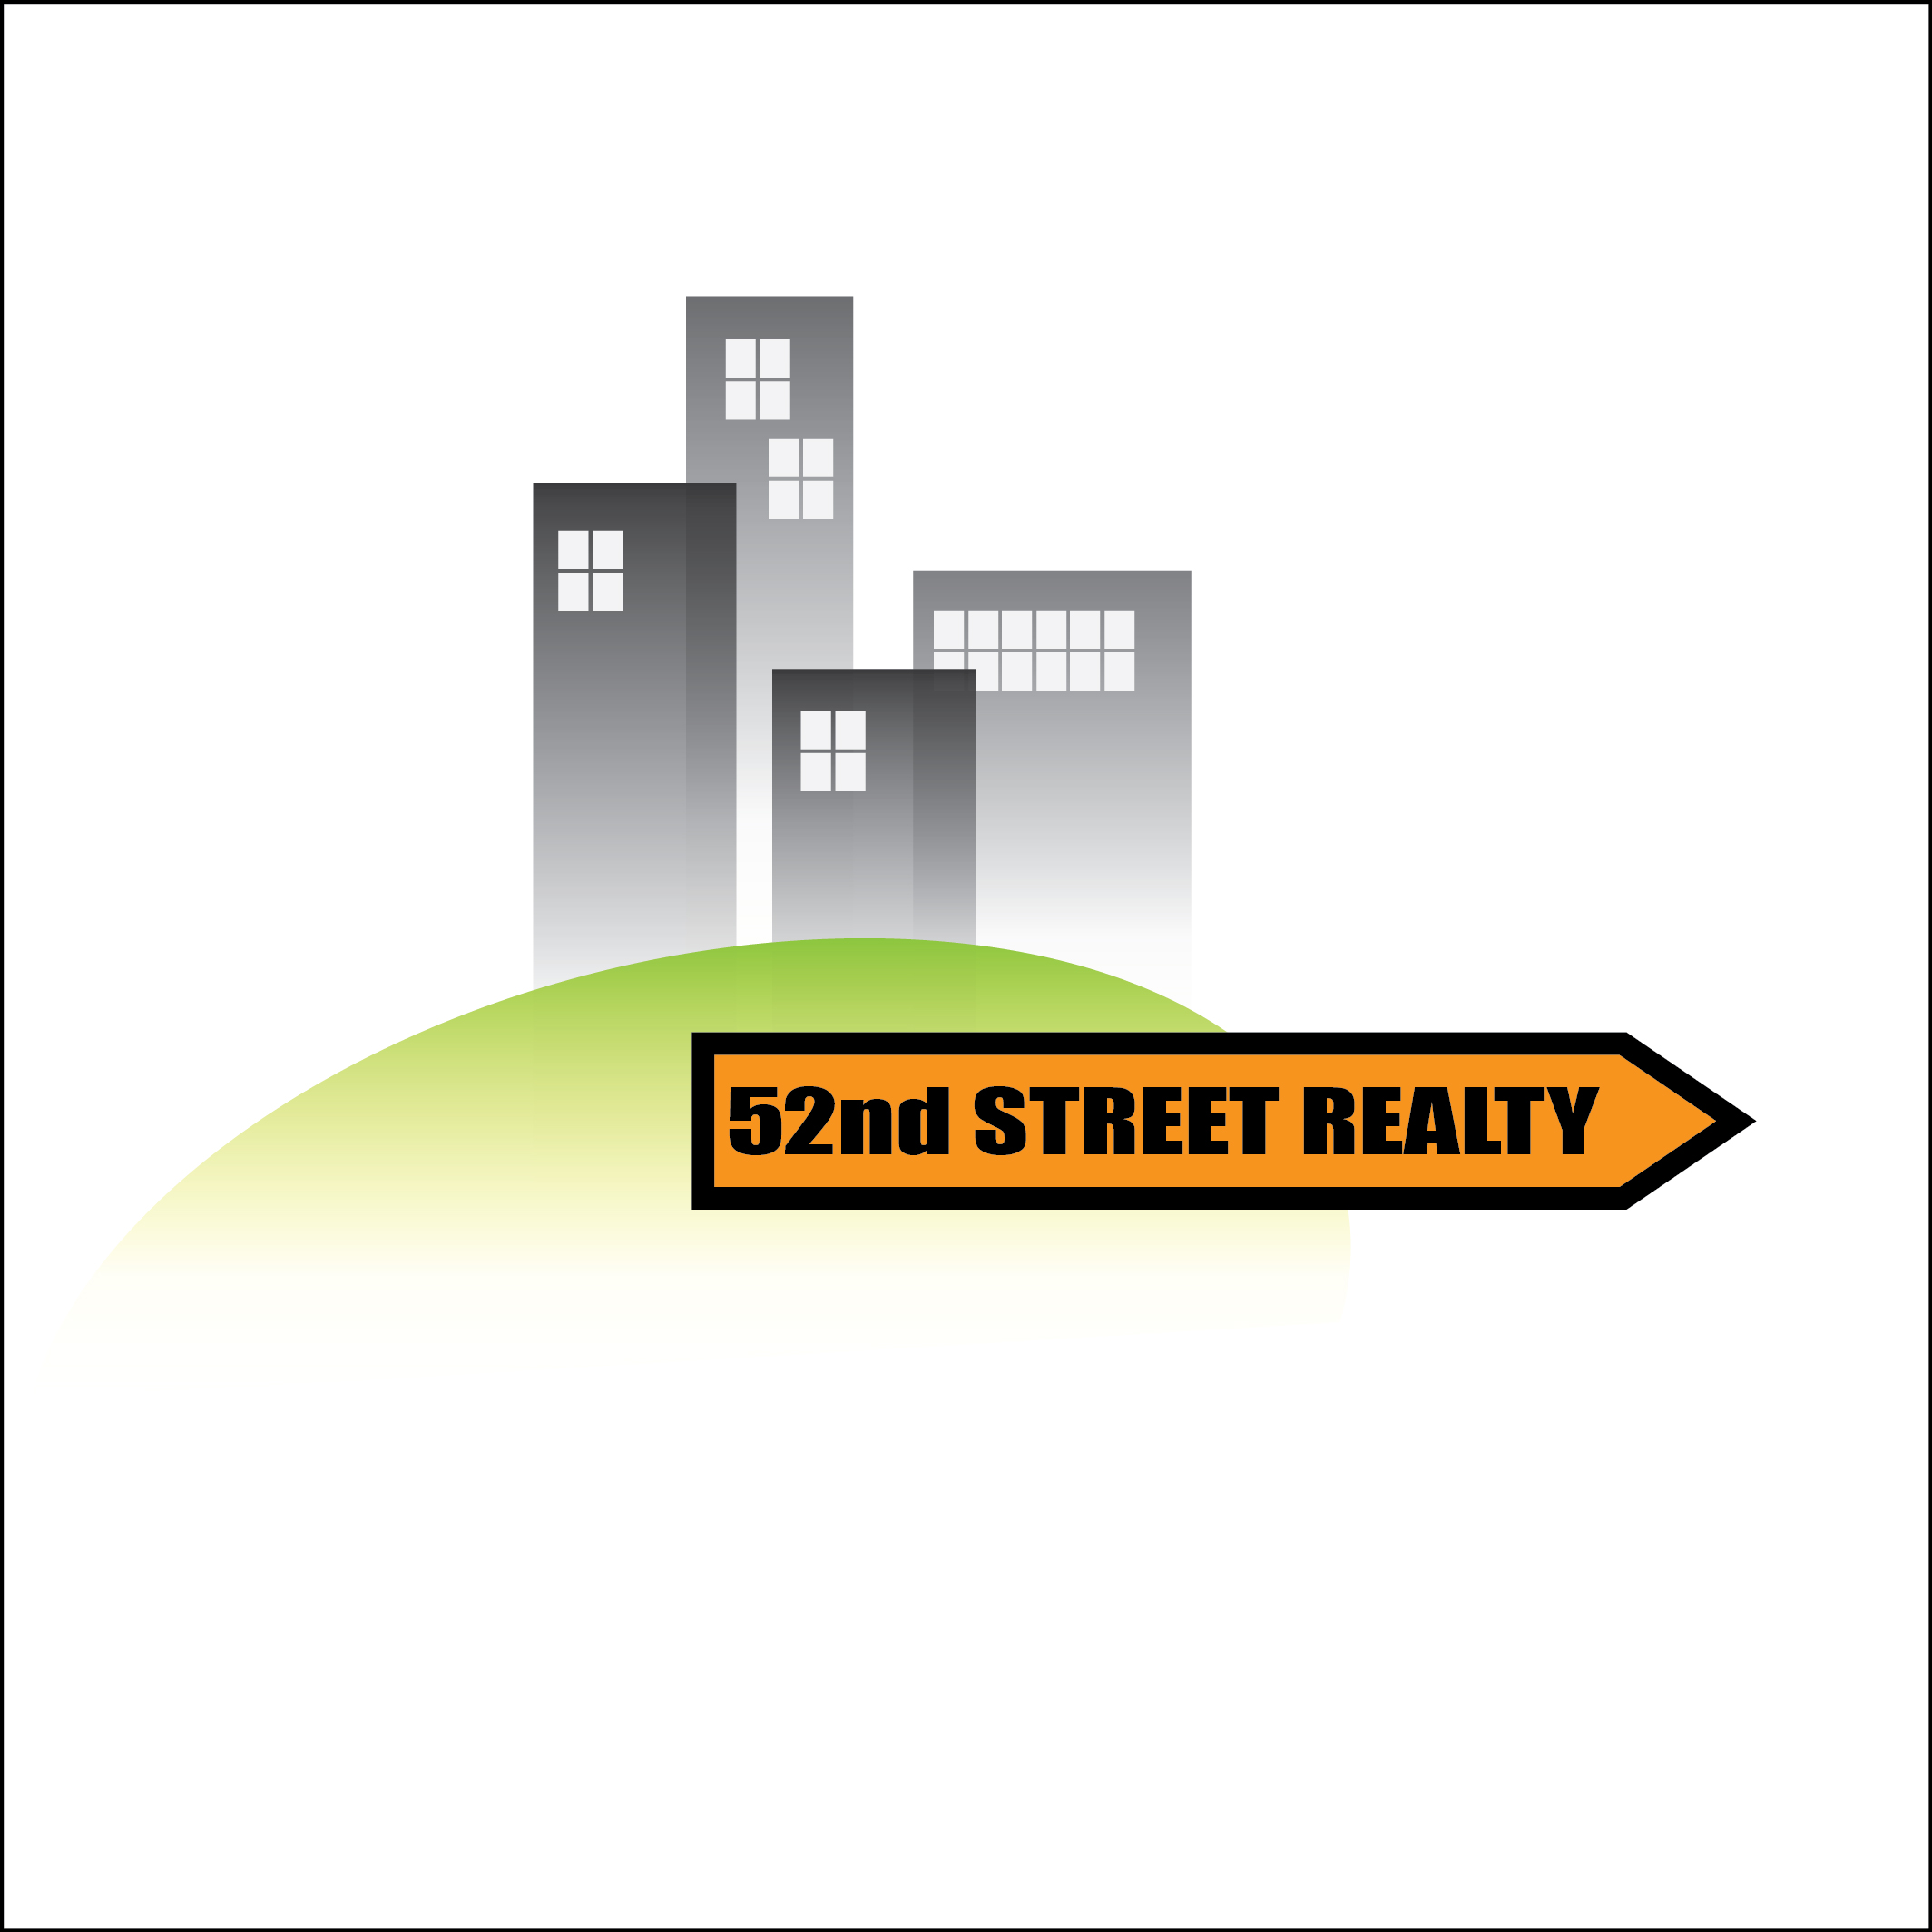 Logo Design by Chandrodayan Mavadian - Entry No. 115 in the Logo Design Contest 52nd Street Realty Logo Design.